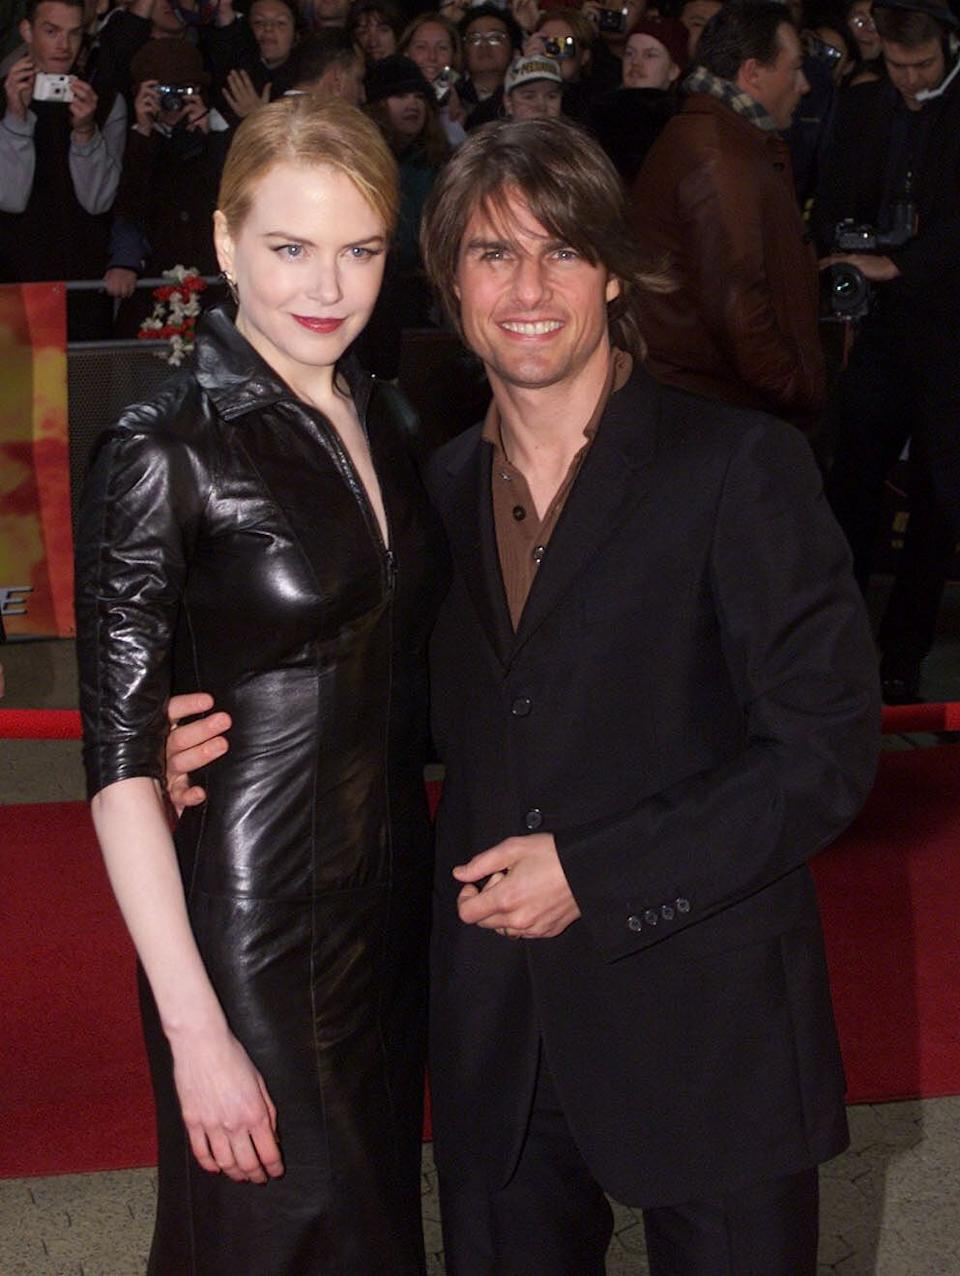 """370226 12: FILE PHOTO: Actor Tom Cruise and his wife Nicole Kidman pose for photographers at the Sydney premiere of """"Mission Impossible 2"""" May 30, 2000 at Fox Studios in Australia. Cruise and Kidman, one of the Hollywood's best-known couples, announced February 5, 2001 that they are separating after more than a decade of marriage. (Photo by Matt Turner/Liaison)"""